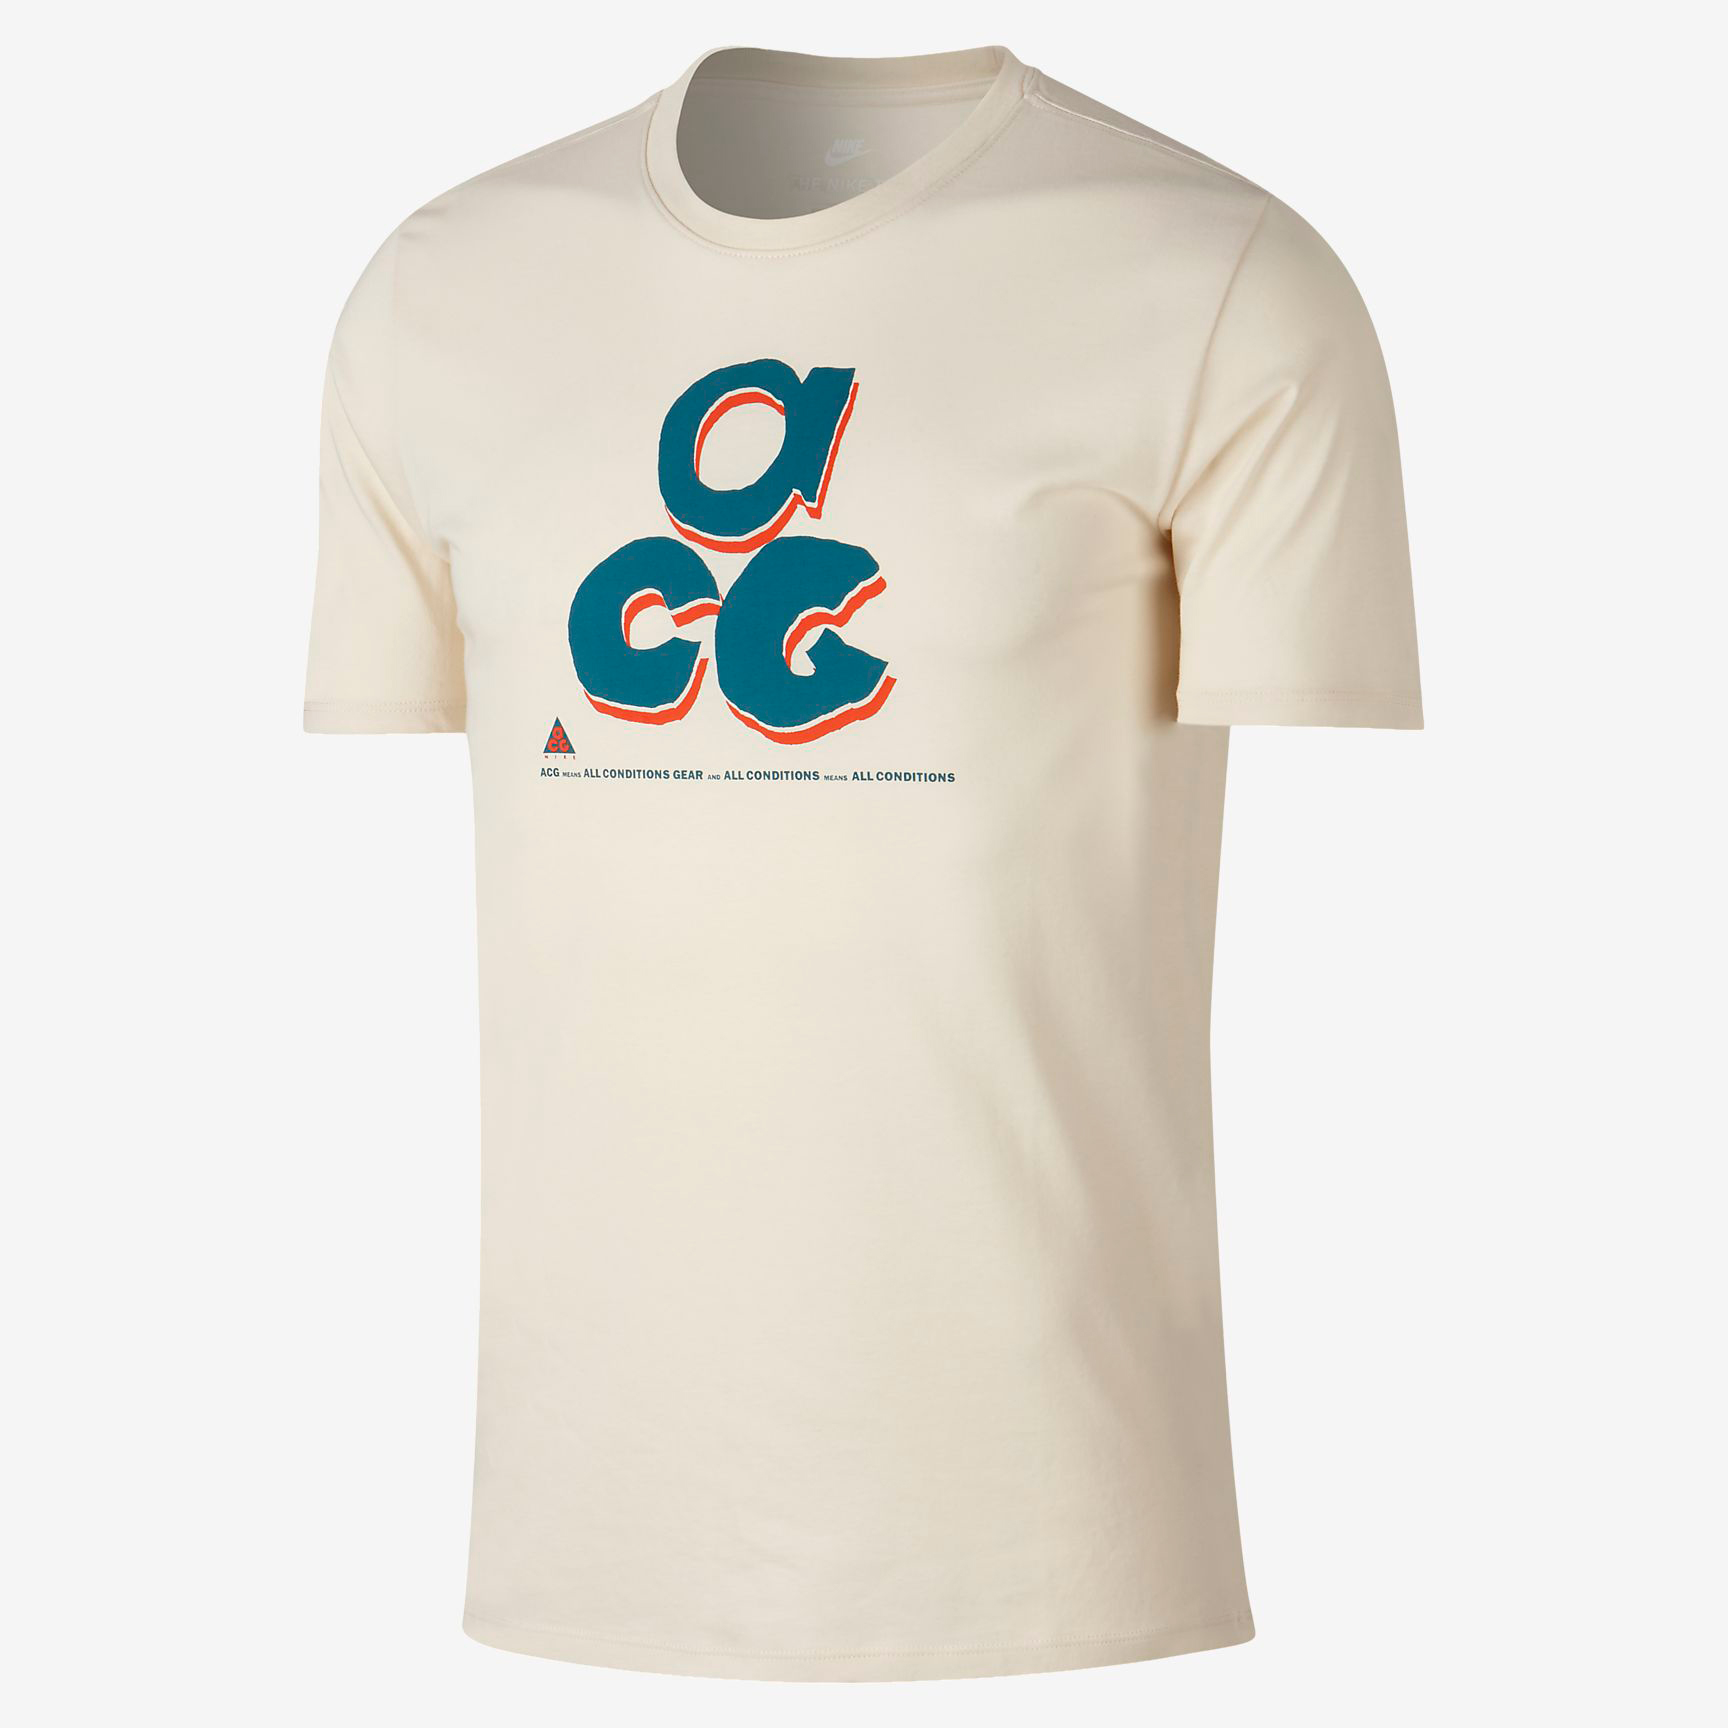 nike-acg-shirt-white-blue